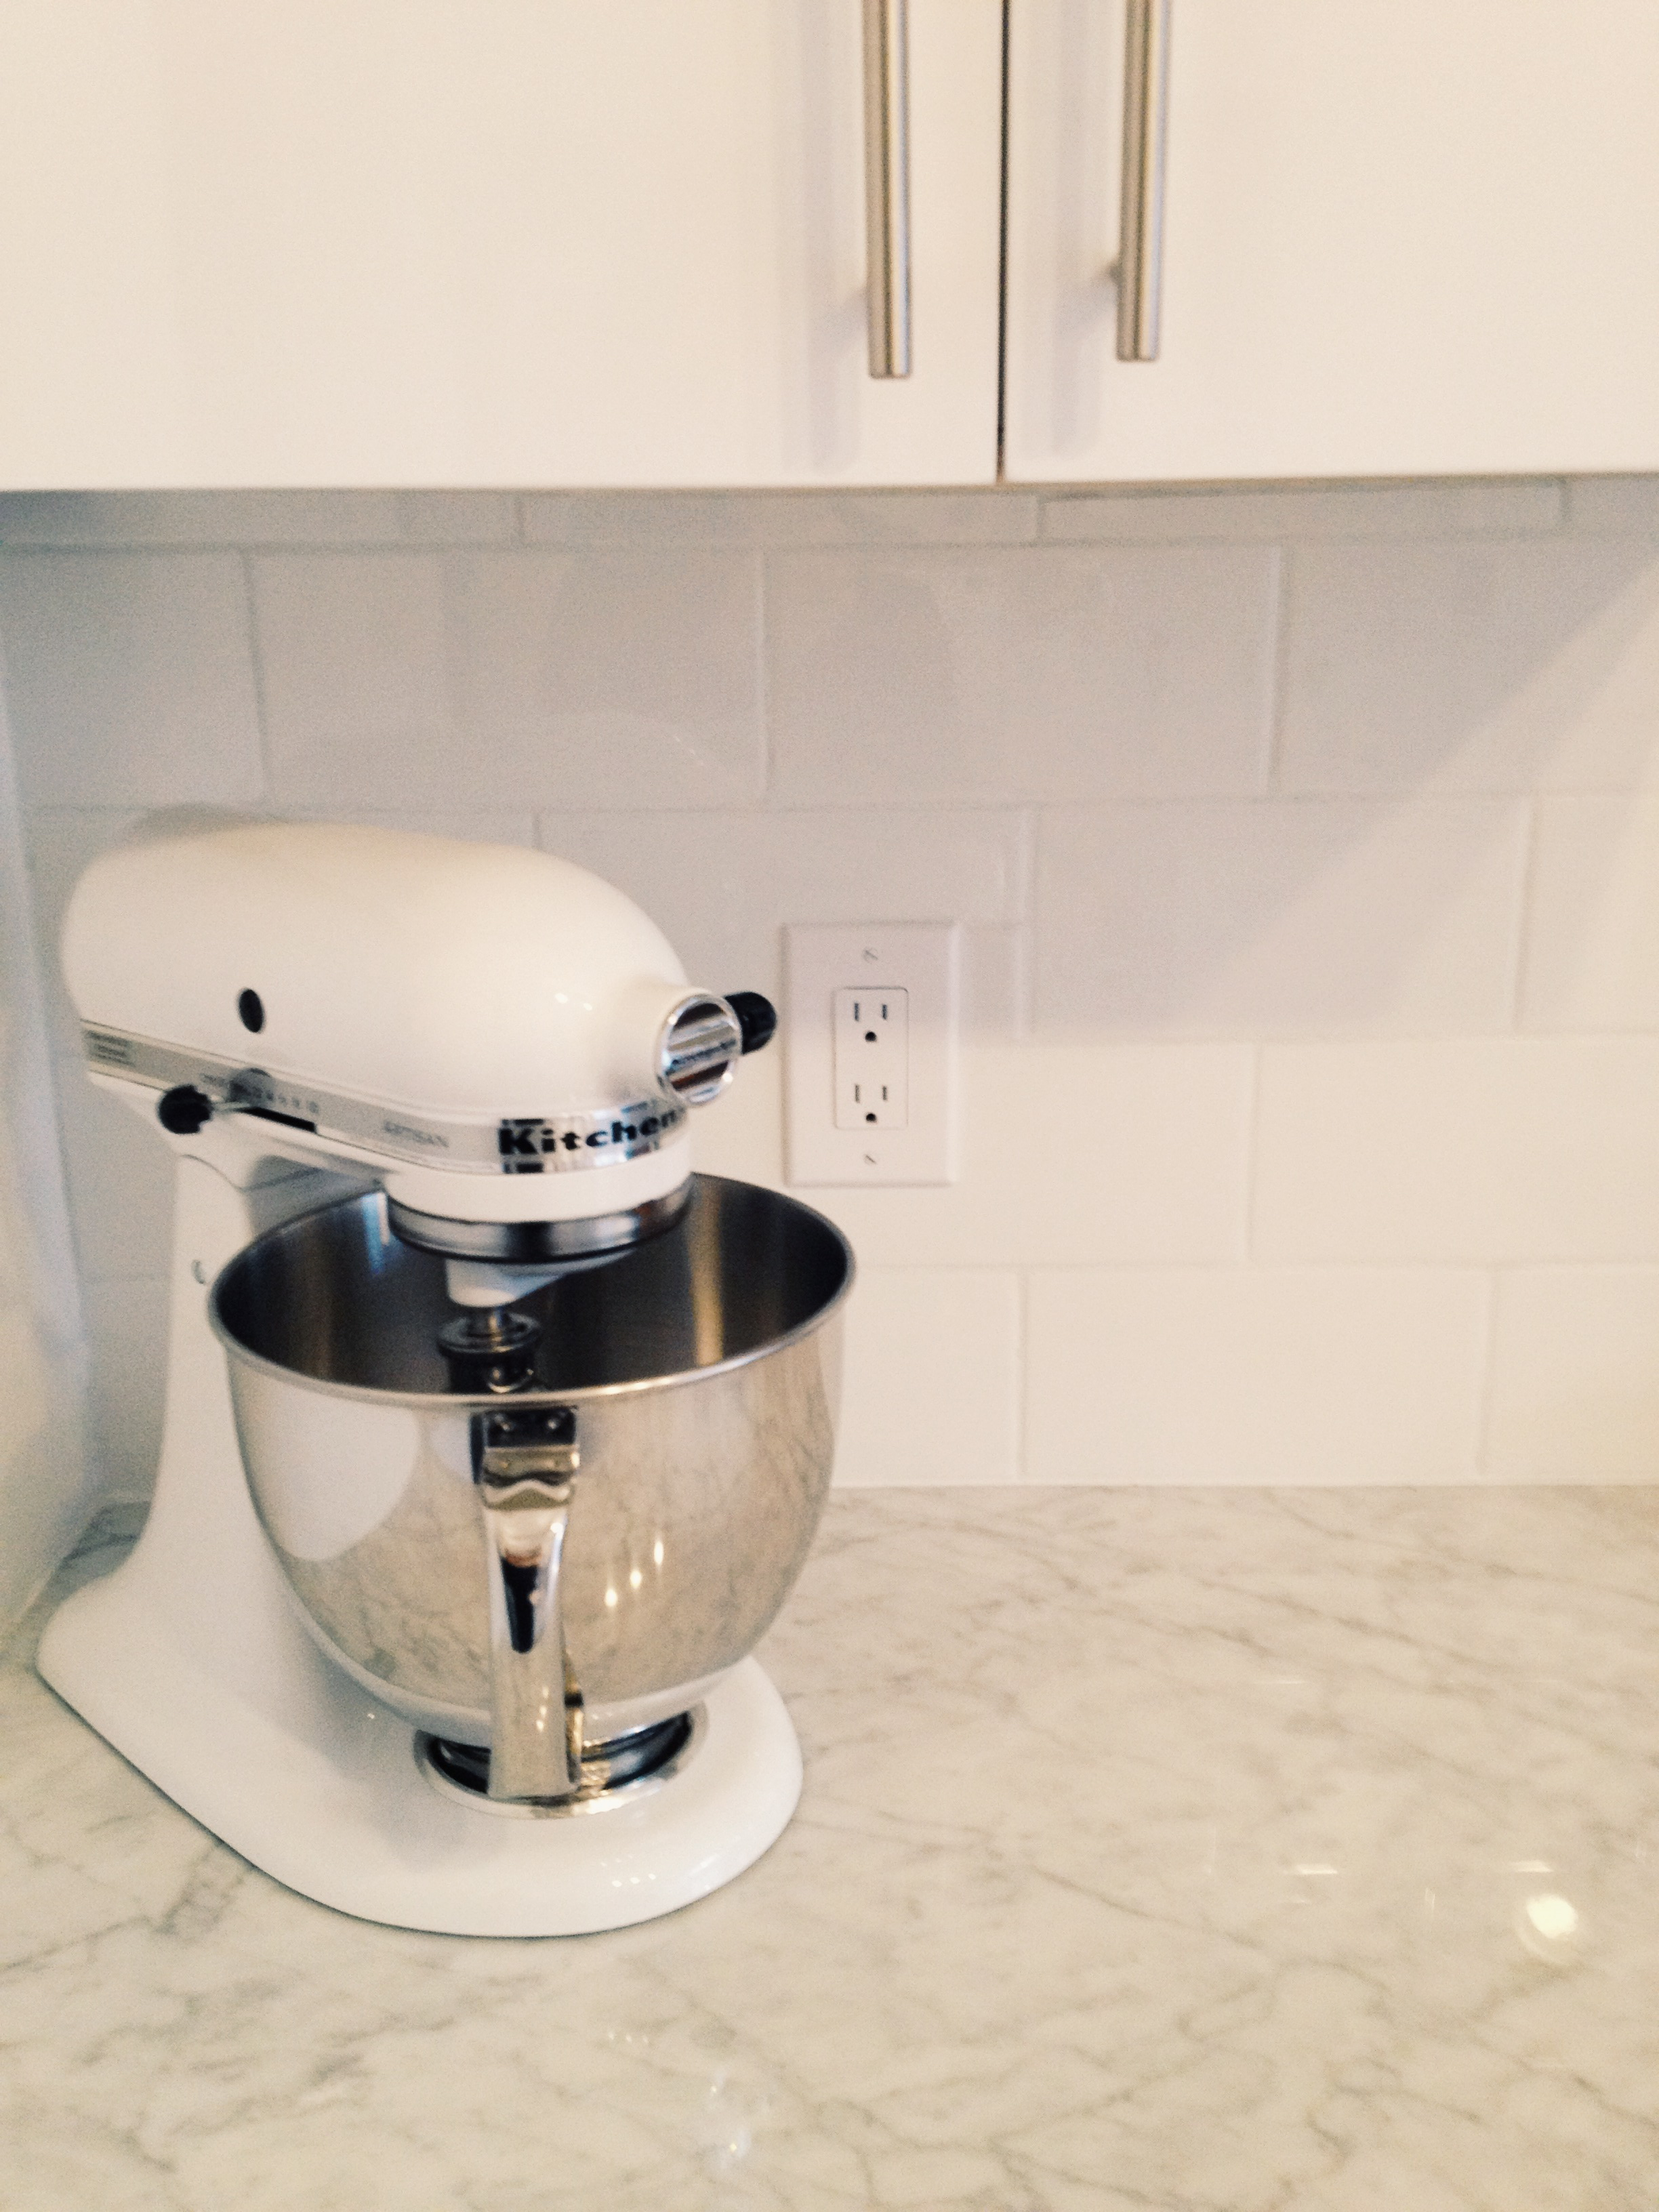 ... White Cabana KitchenAid Stand Mixer 3